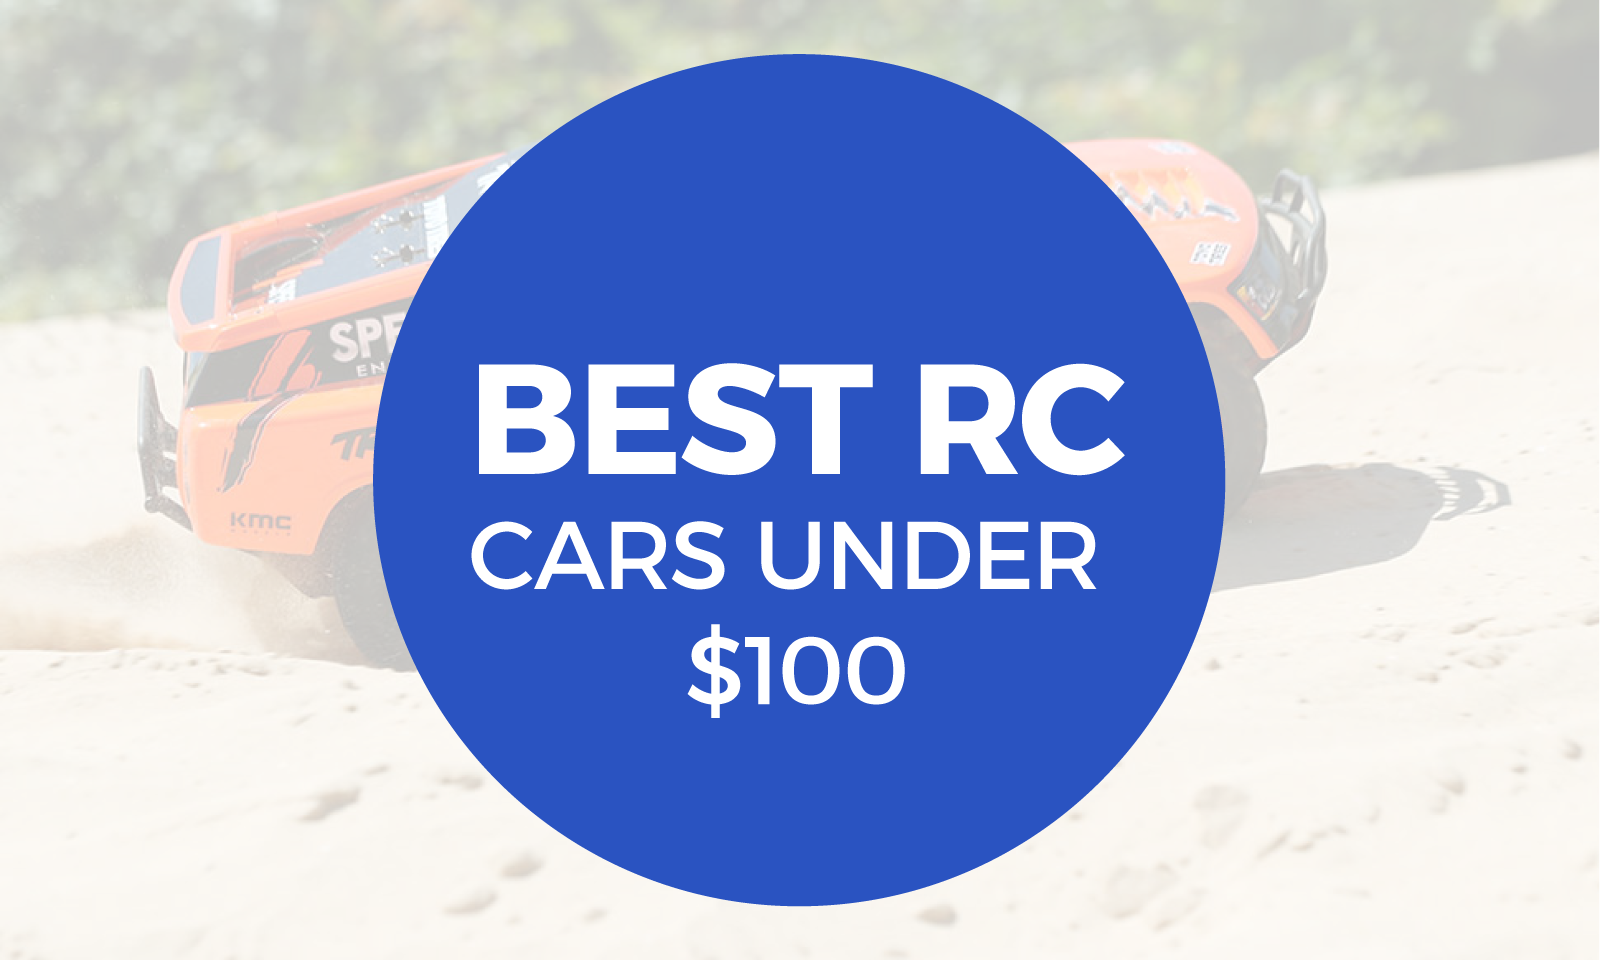 Best RC Car Under $100 Header